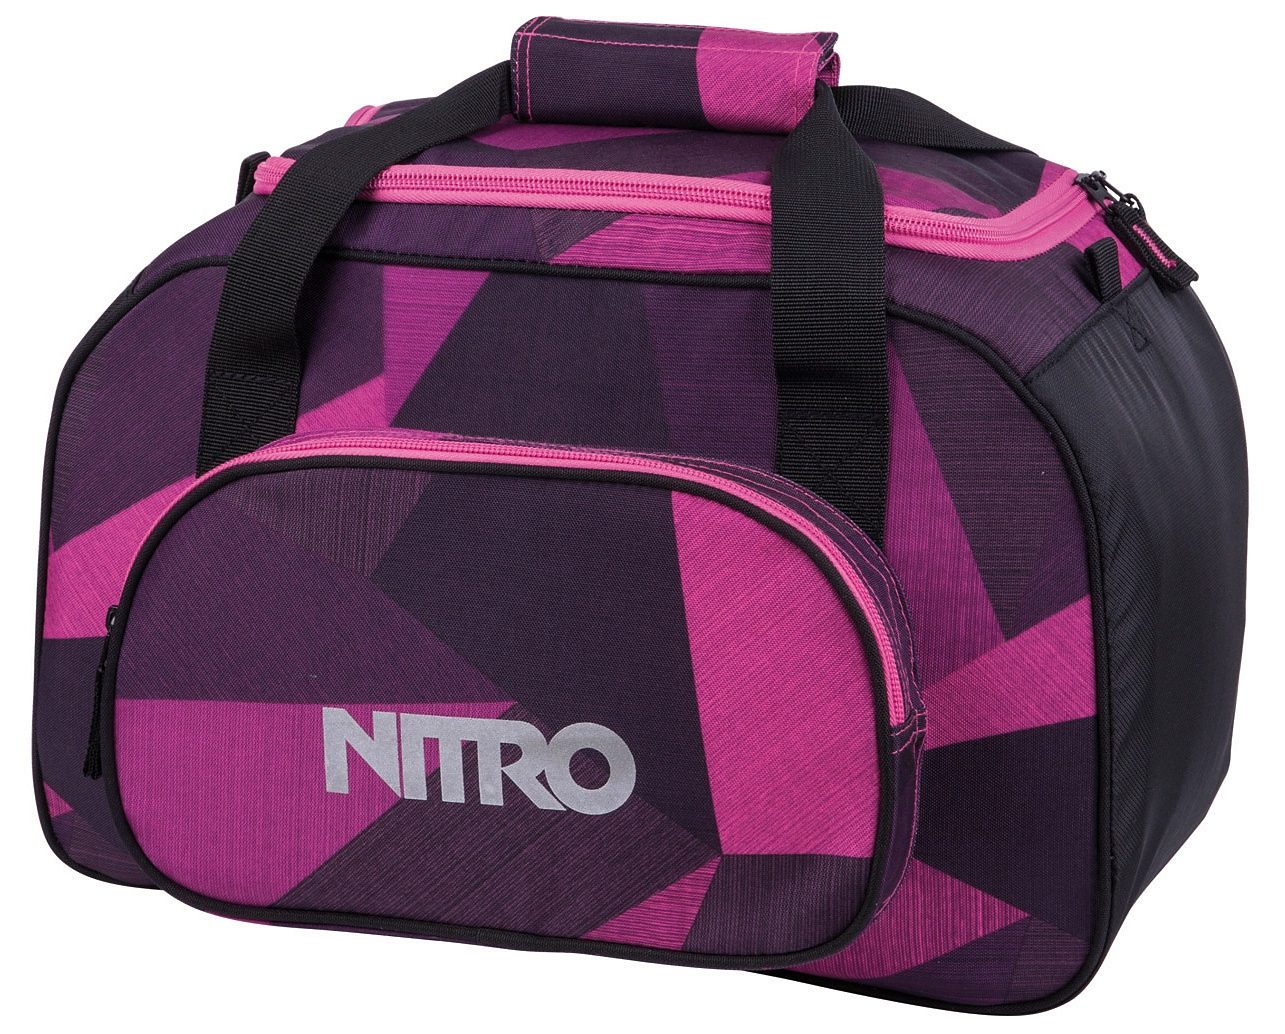 Nitro Reisetasche, »Duffle Bag XS- Fragments purple«